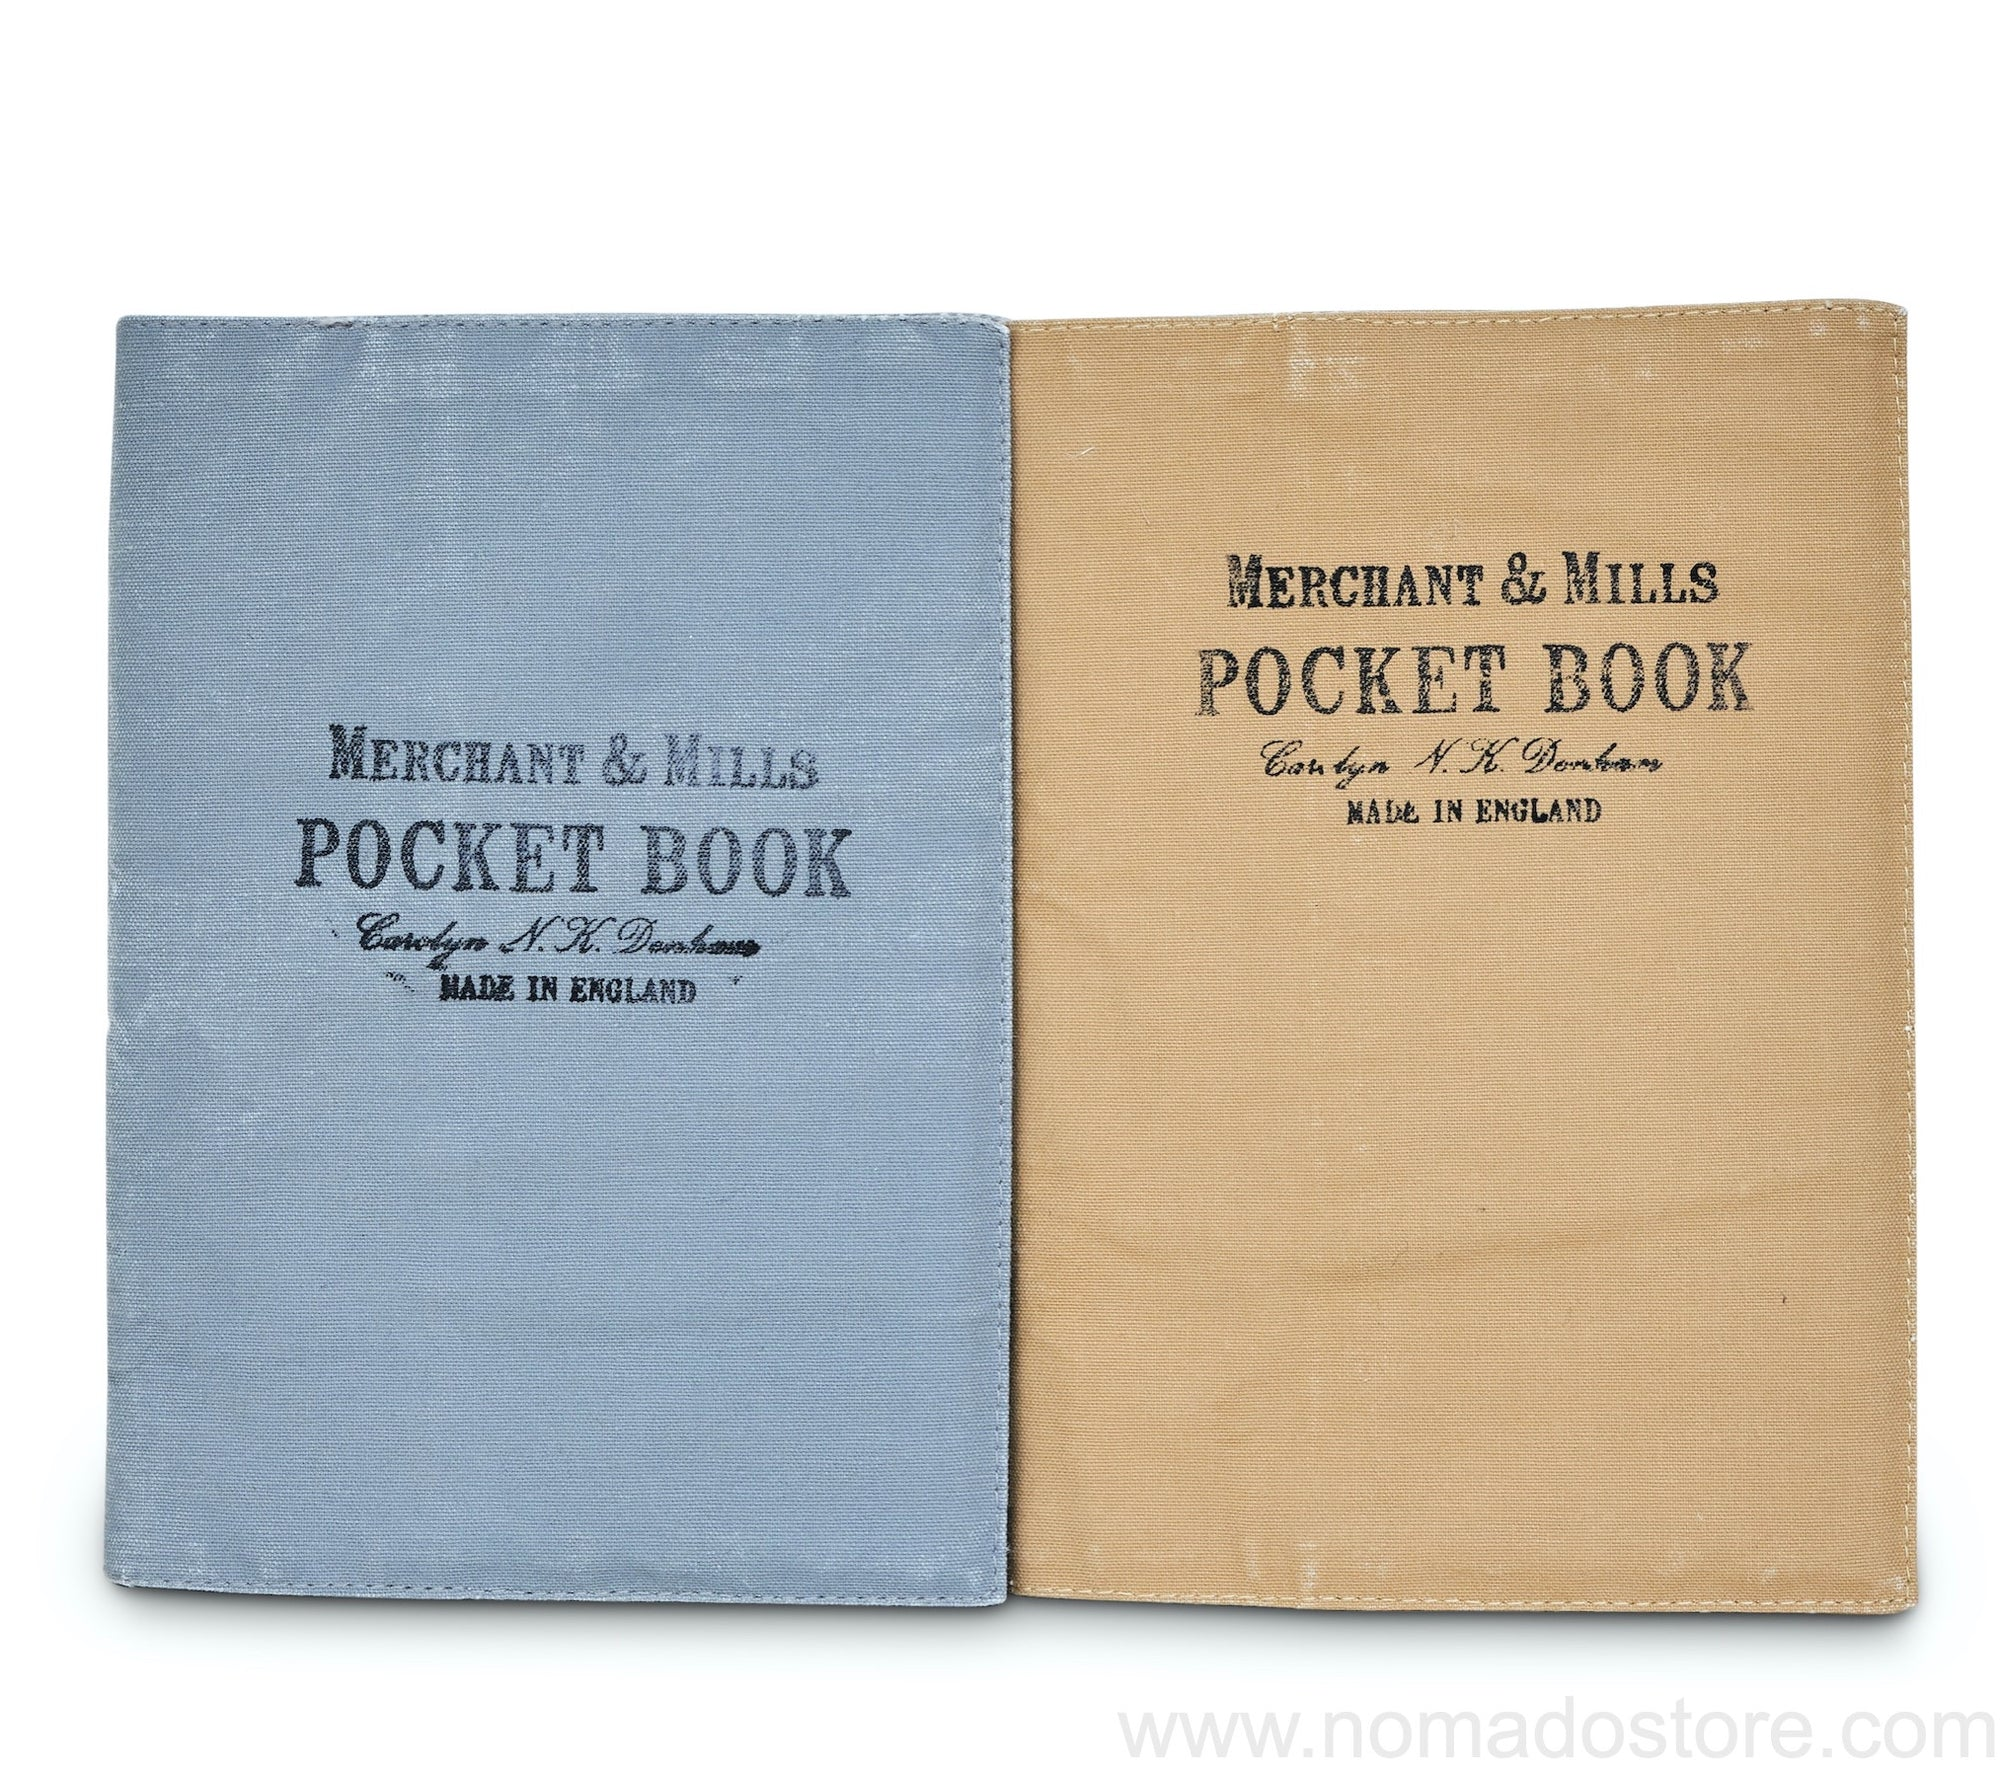 Merchant & Mills Pocket Book (2 colours)